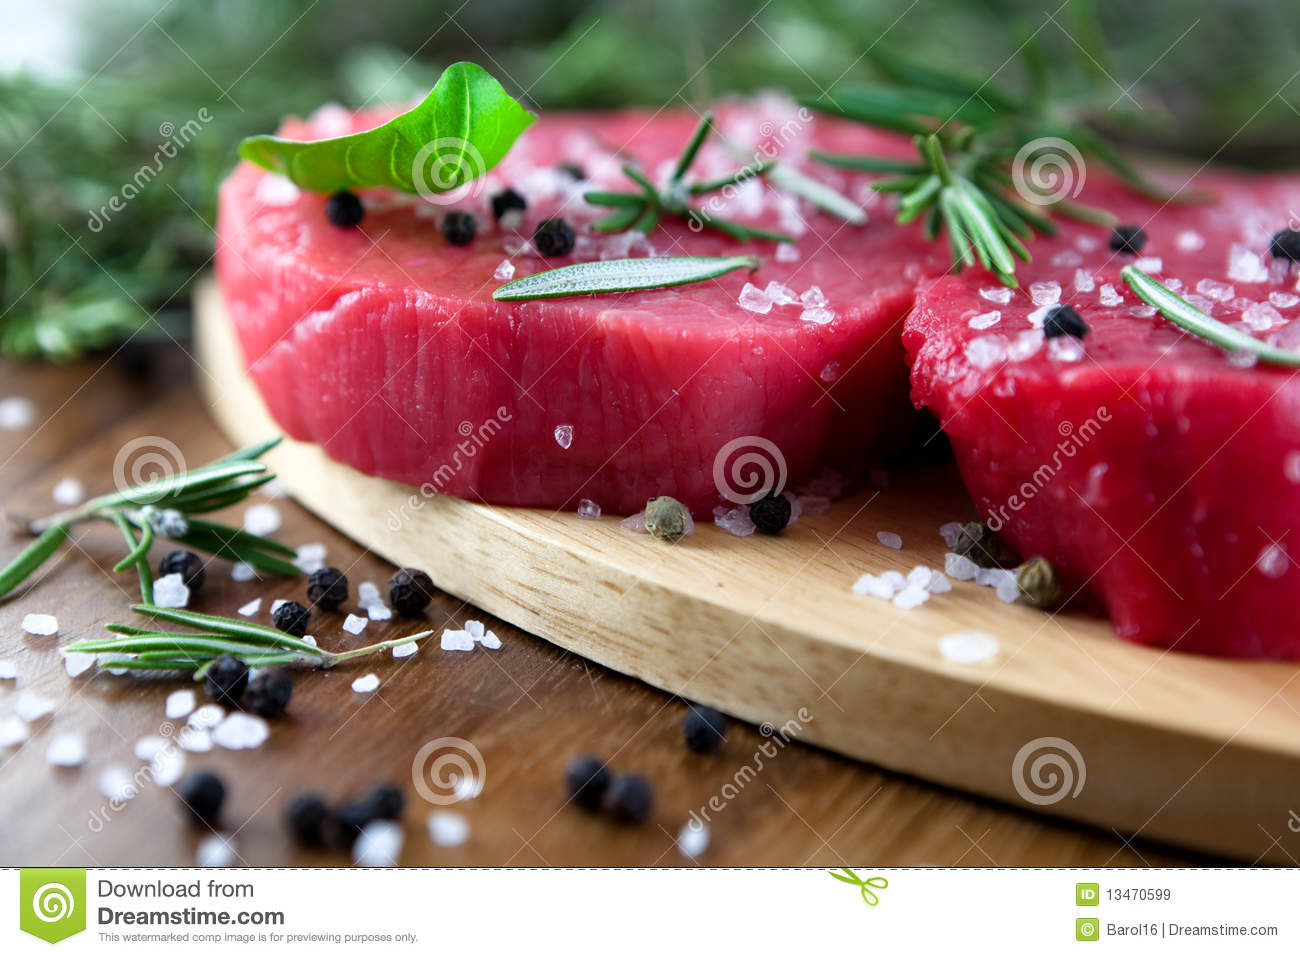 Raw beef with herbs